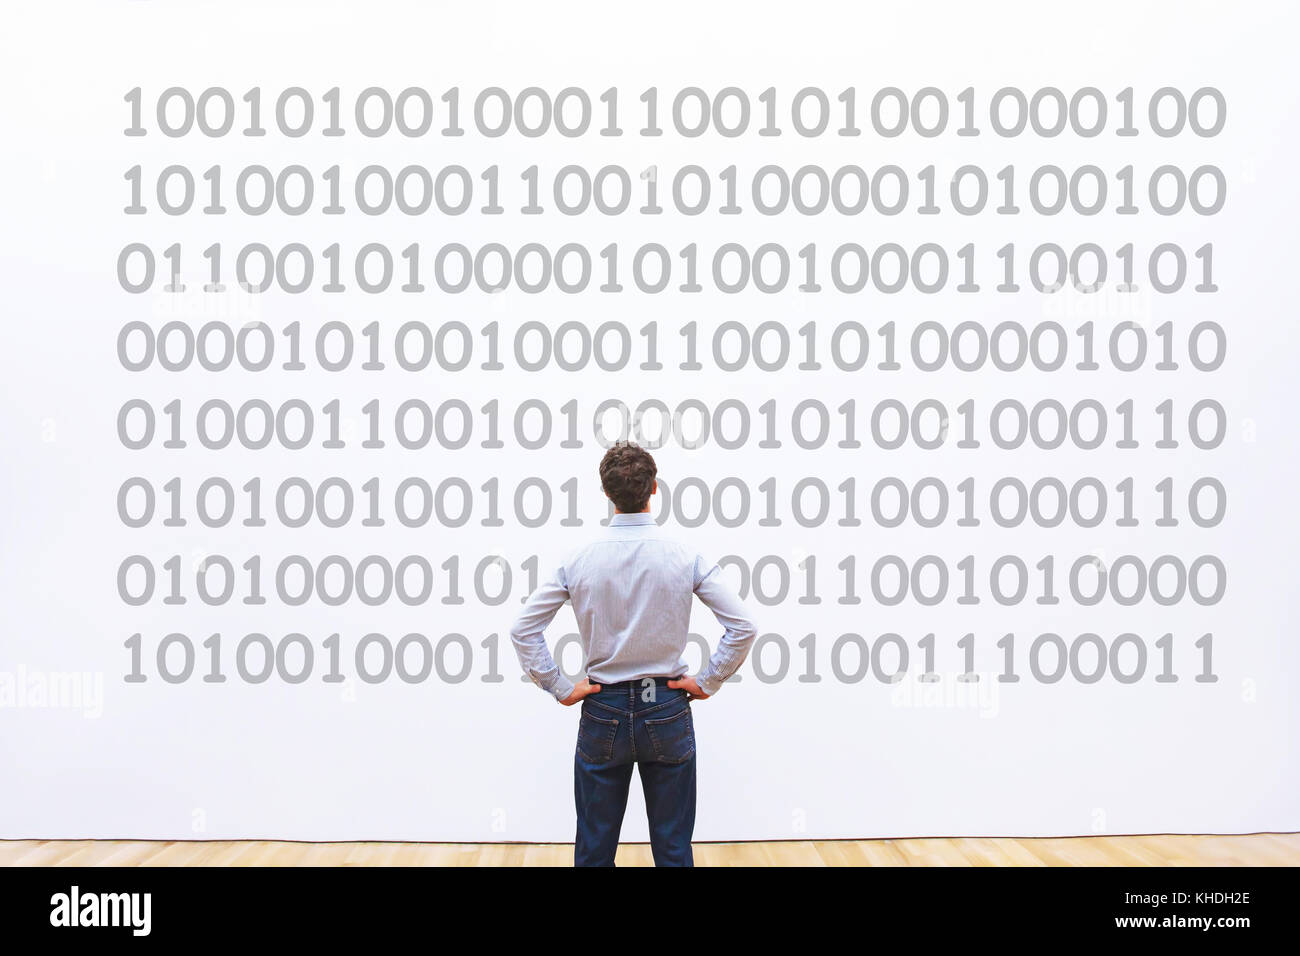 man programmer looking at binary code, coding concept, data encryption - Stock Image